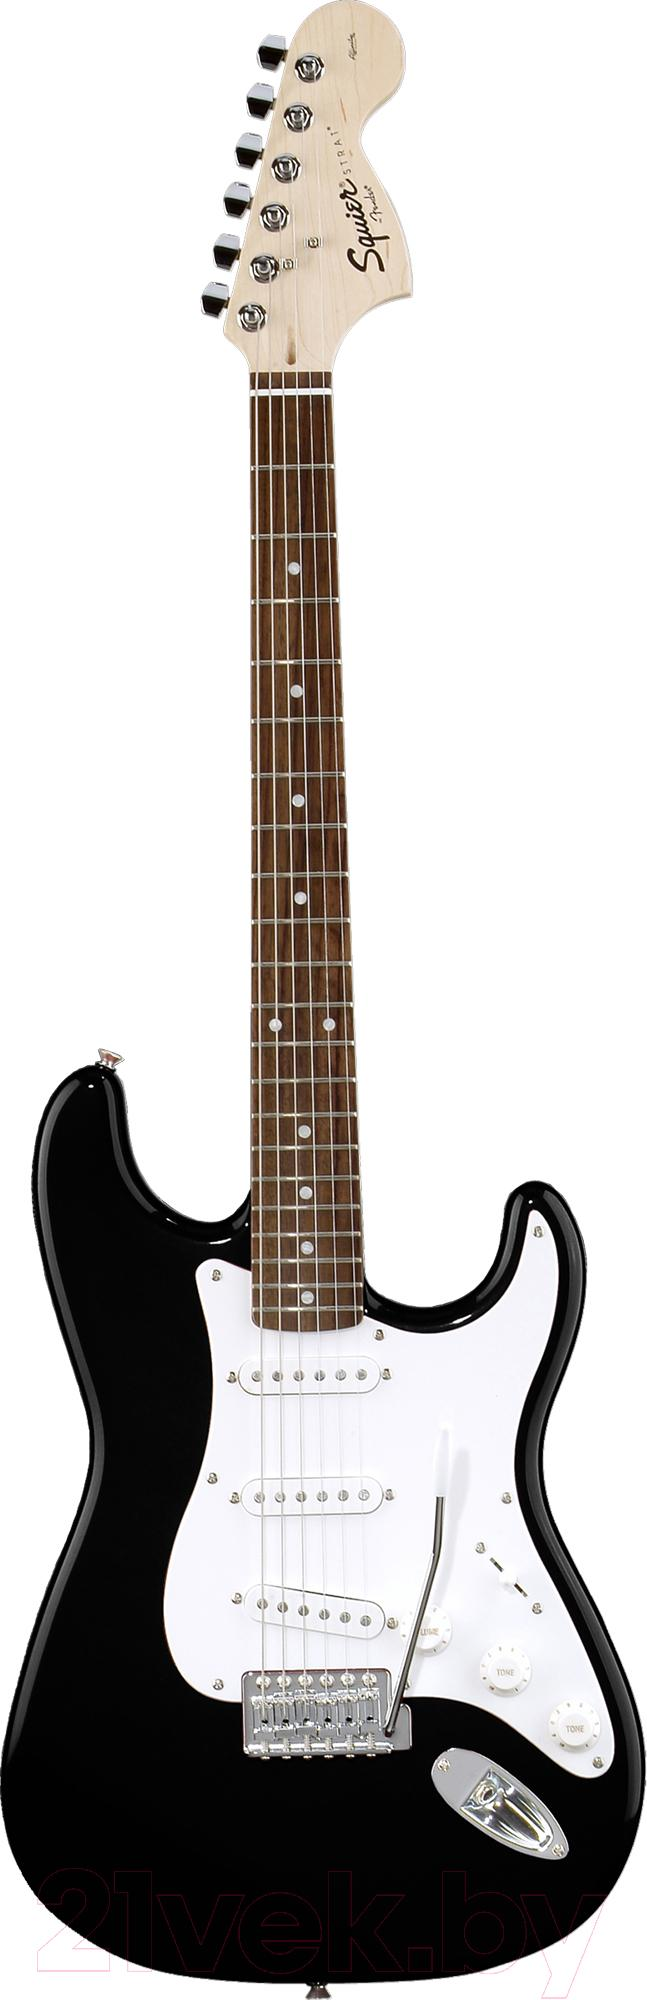 Squier Affinity Stratocaster RW (Black) 21vek.by 3618000.000